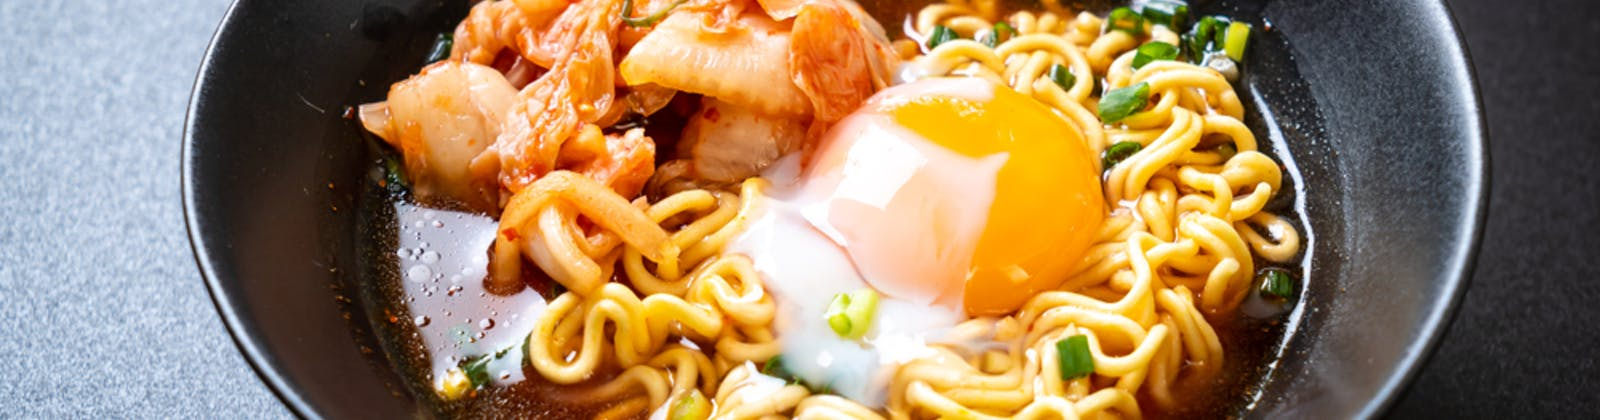 spicy noodles with kimchi and a poached egg